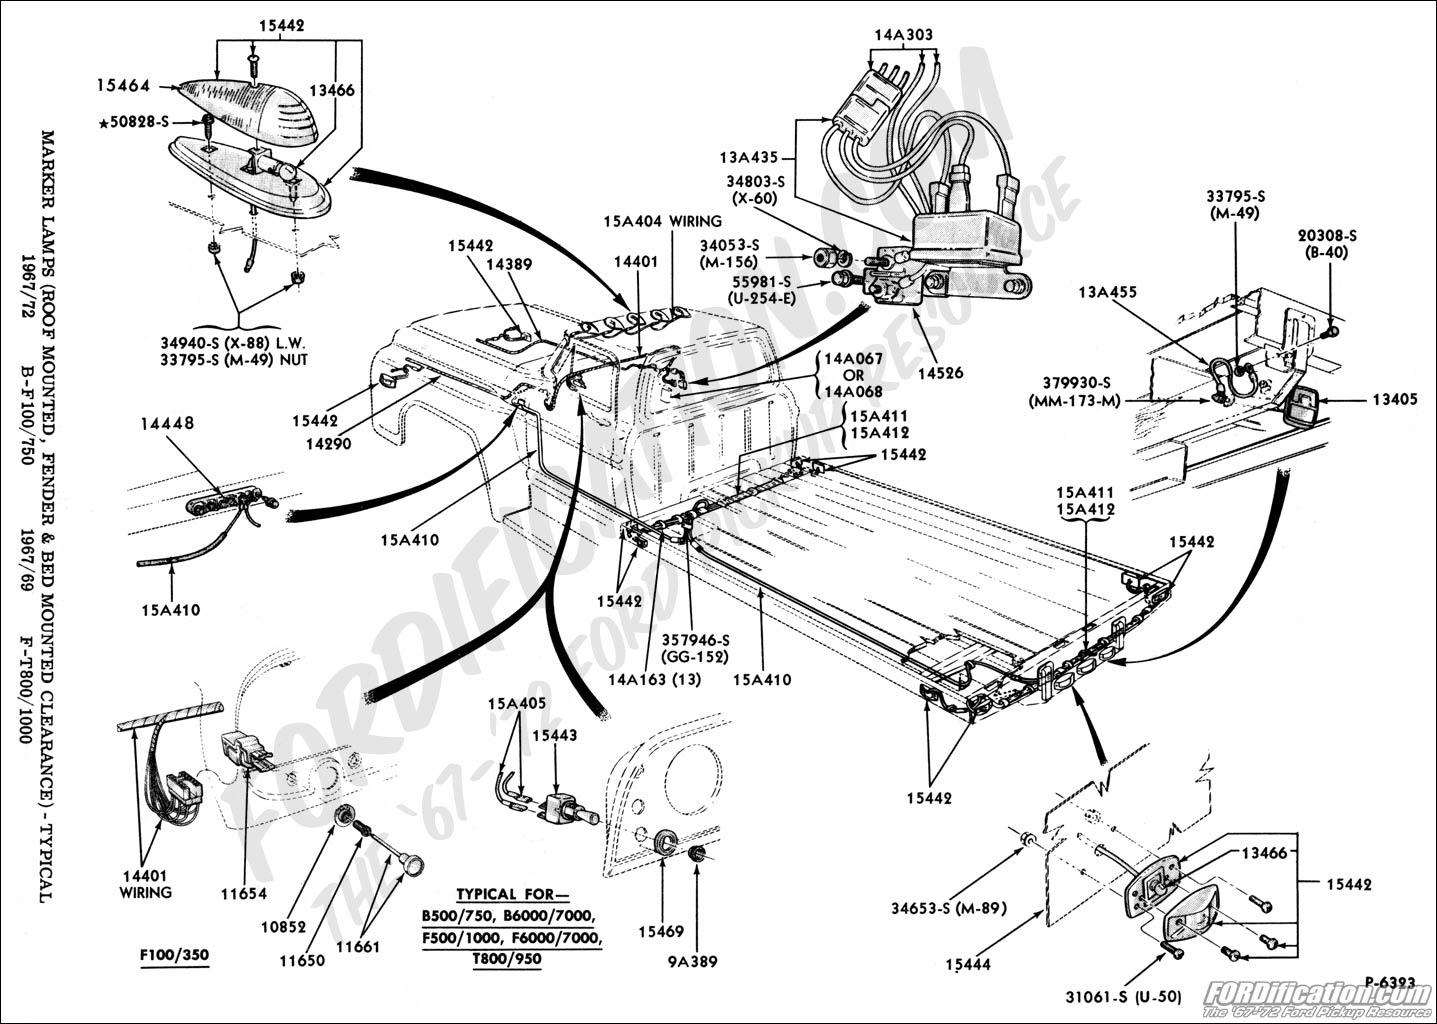 99 tahoe cruise control wiring diagram wiring diagram database 93 F150 Steering Column Assembly Diagram malibu lighting wiring diagrams best wiring library 2002 chevy tahoe wiring diagram 99 tahoe cruise control wiring diagram